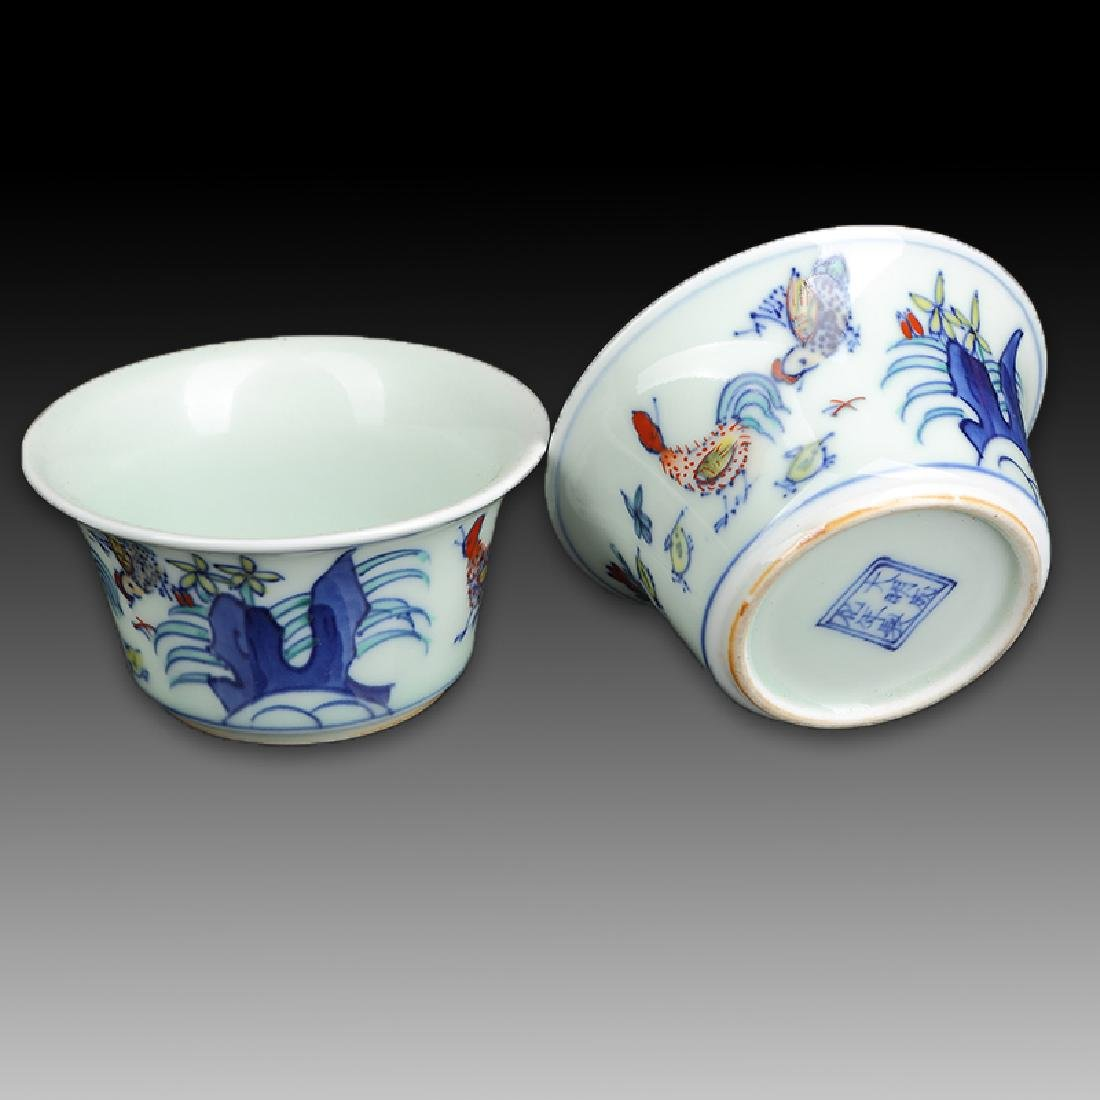 Pair of Chinese Doucai Porcelain Cups - 2